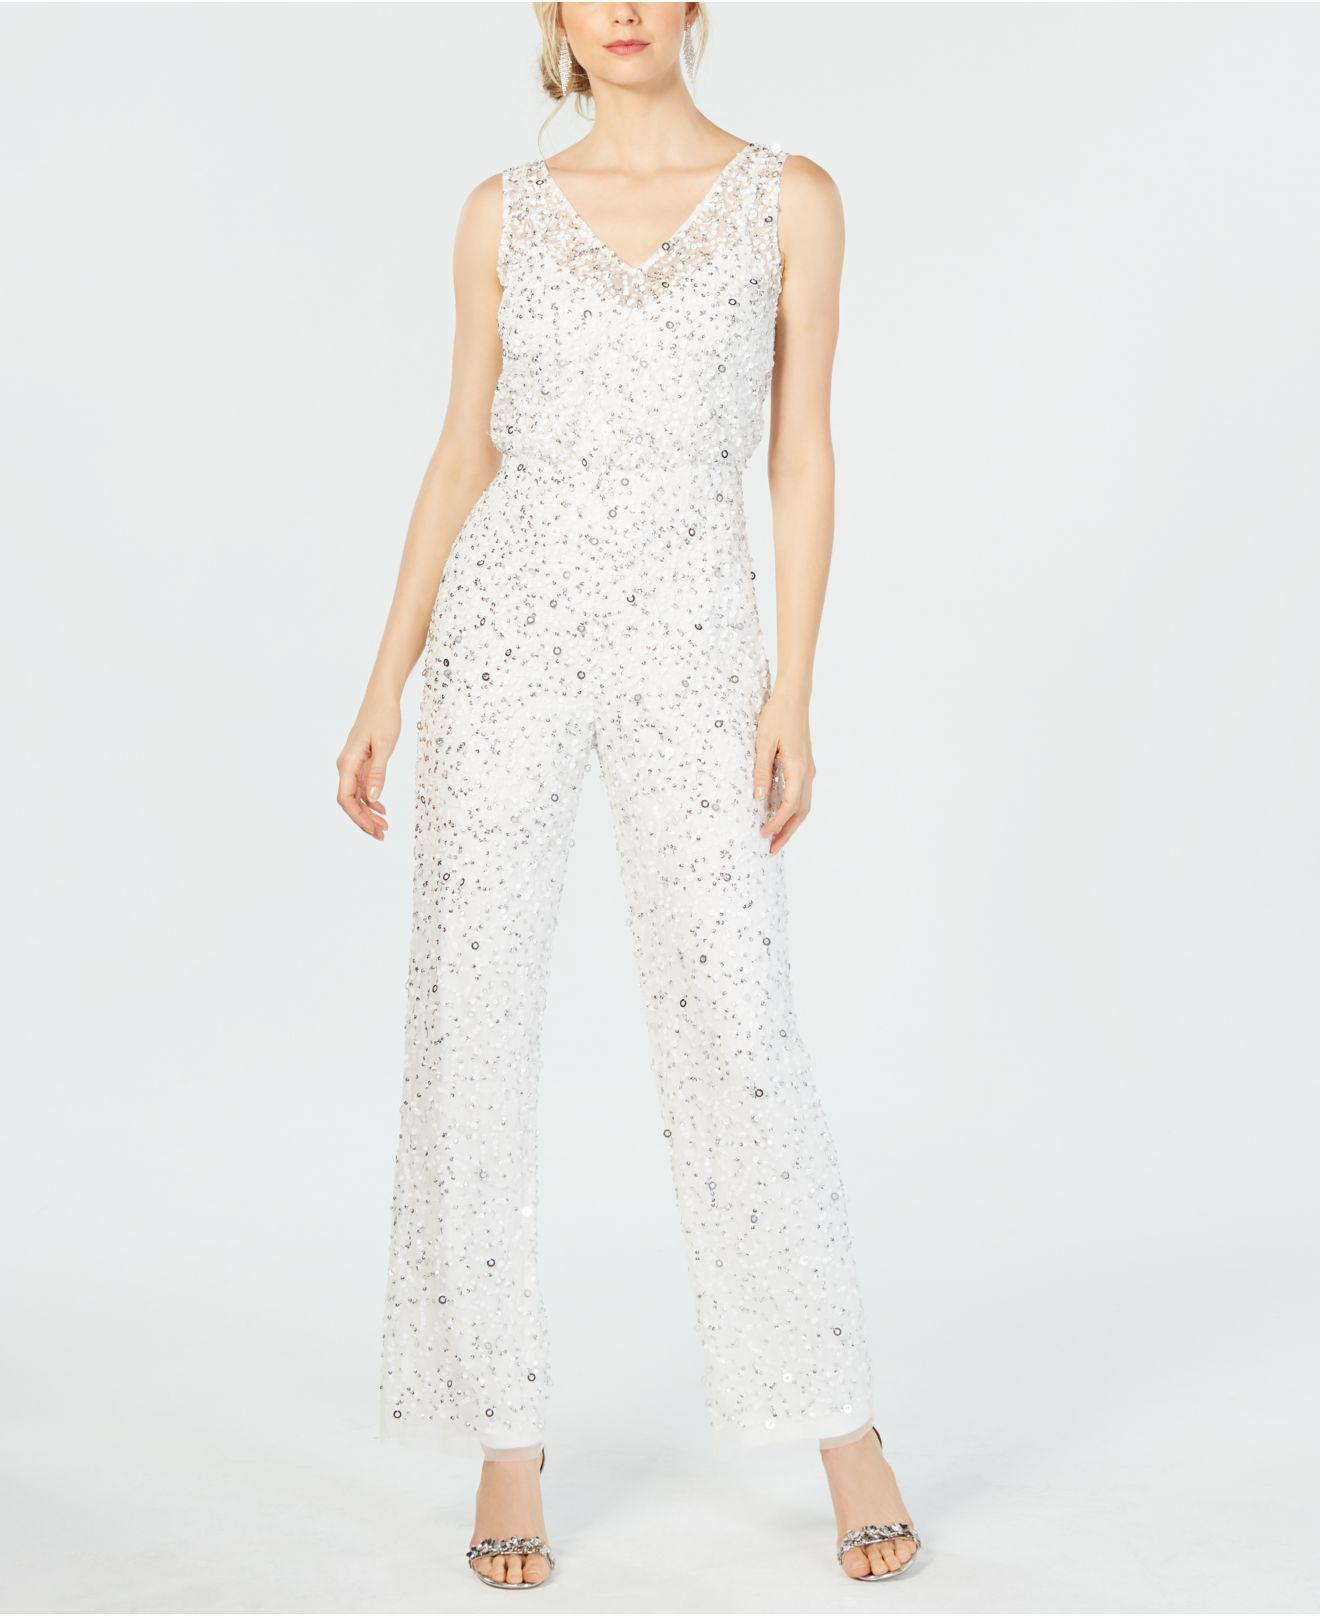 41e7339ba764 Lyst - Adrianna Papell Sequin-embellished Jumpsuit in White